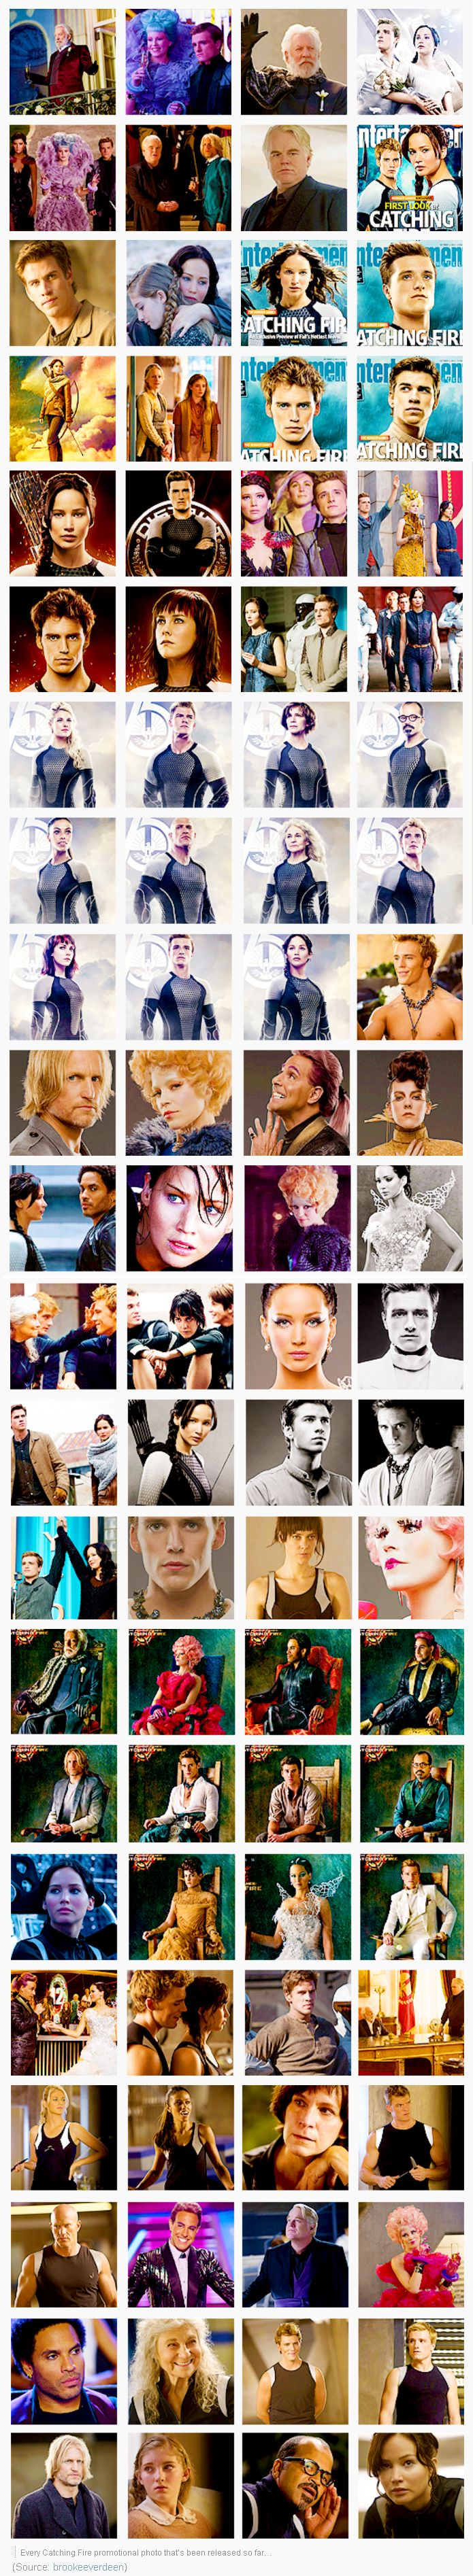 Every Catching Fire promotional poster that's been released! We're not obsessed. Really.